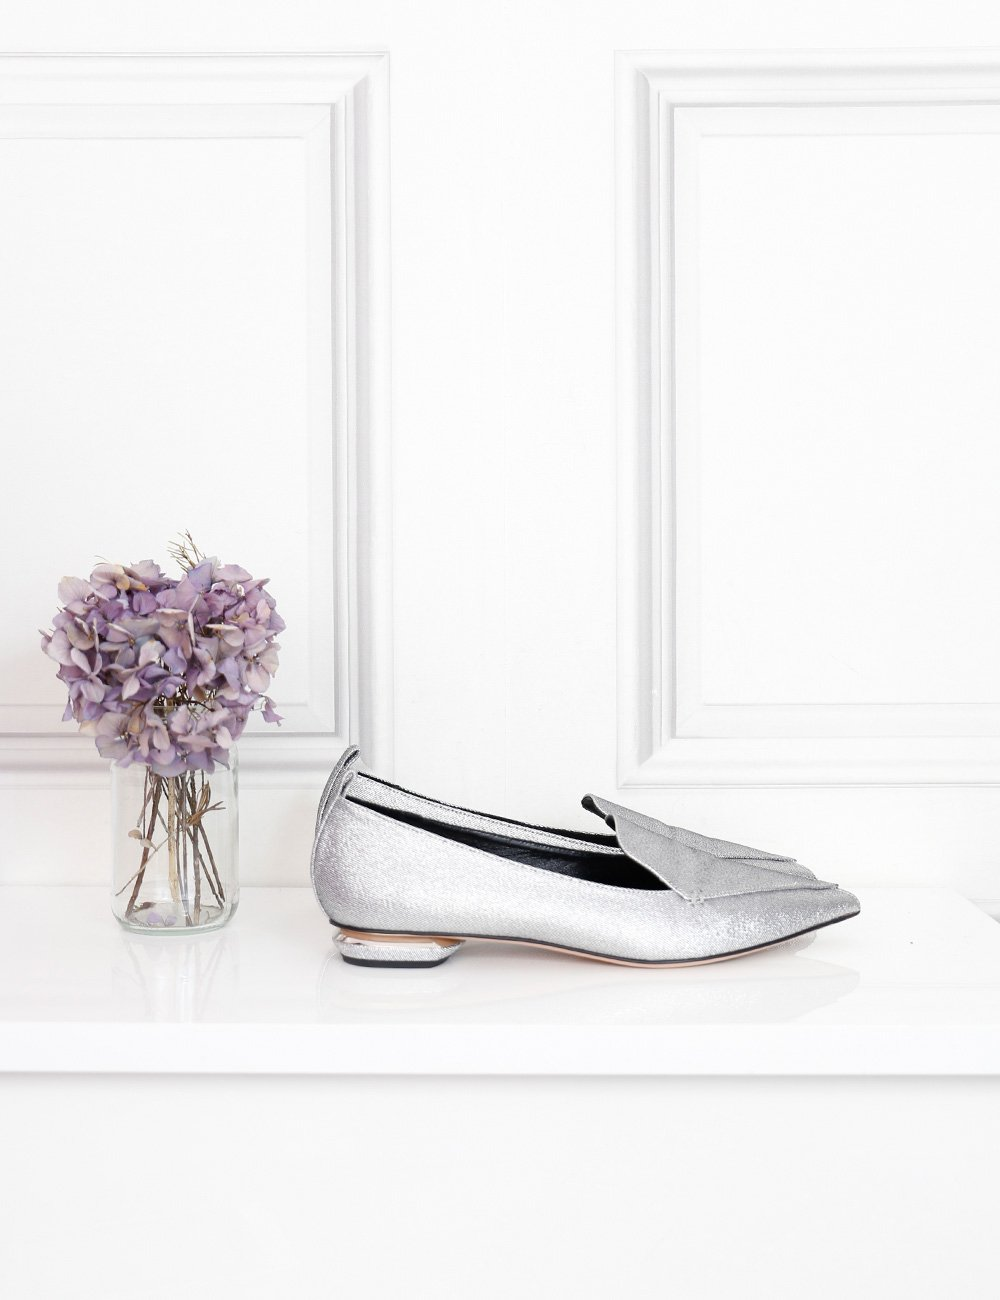 Nicholas Kirkwood silver beya metallic twill pointed toe flats 8Uk